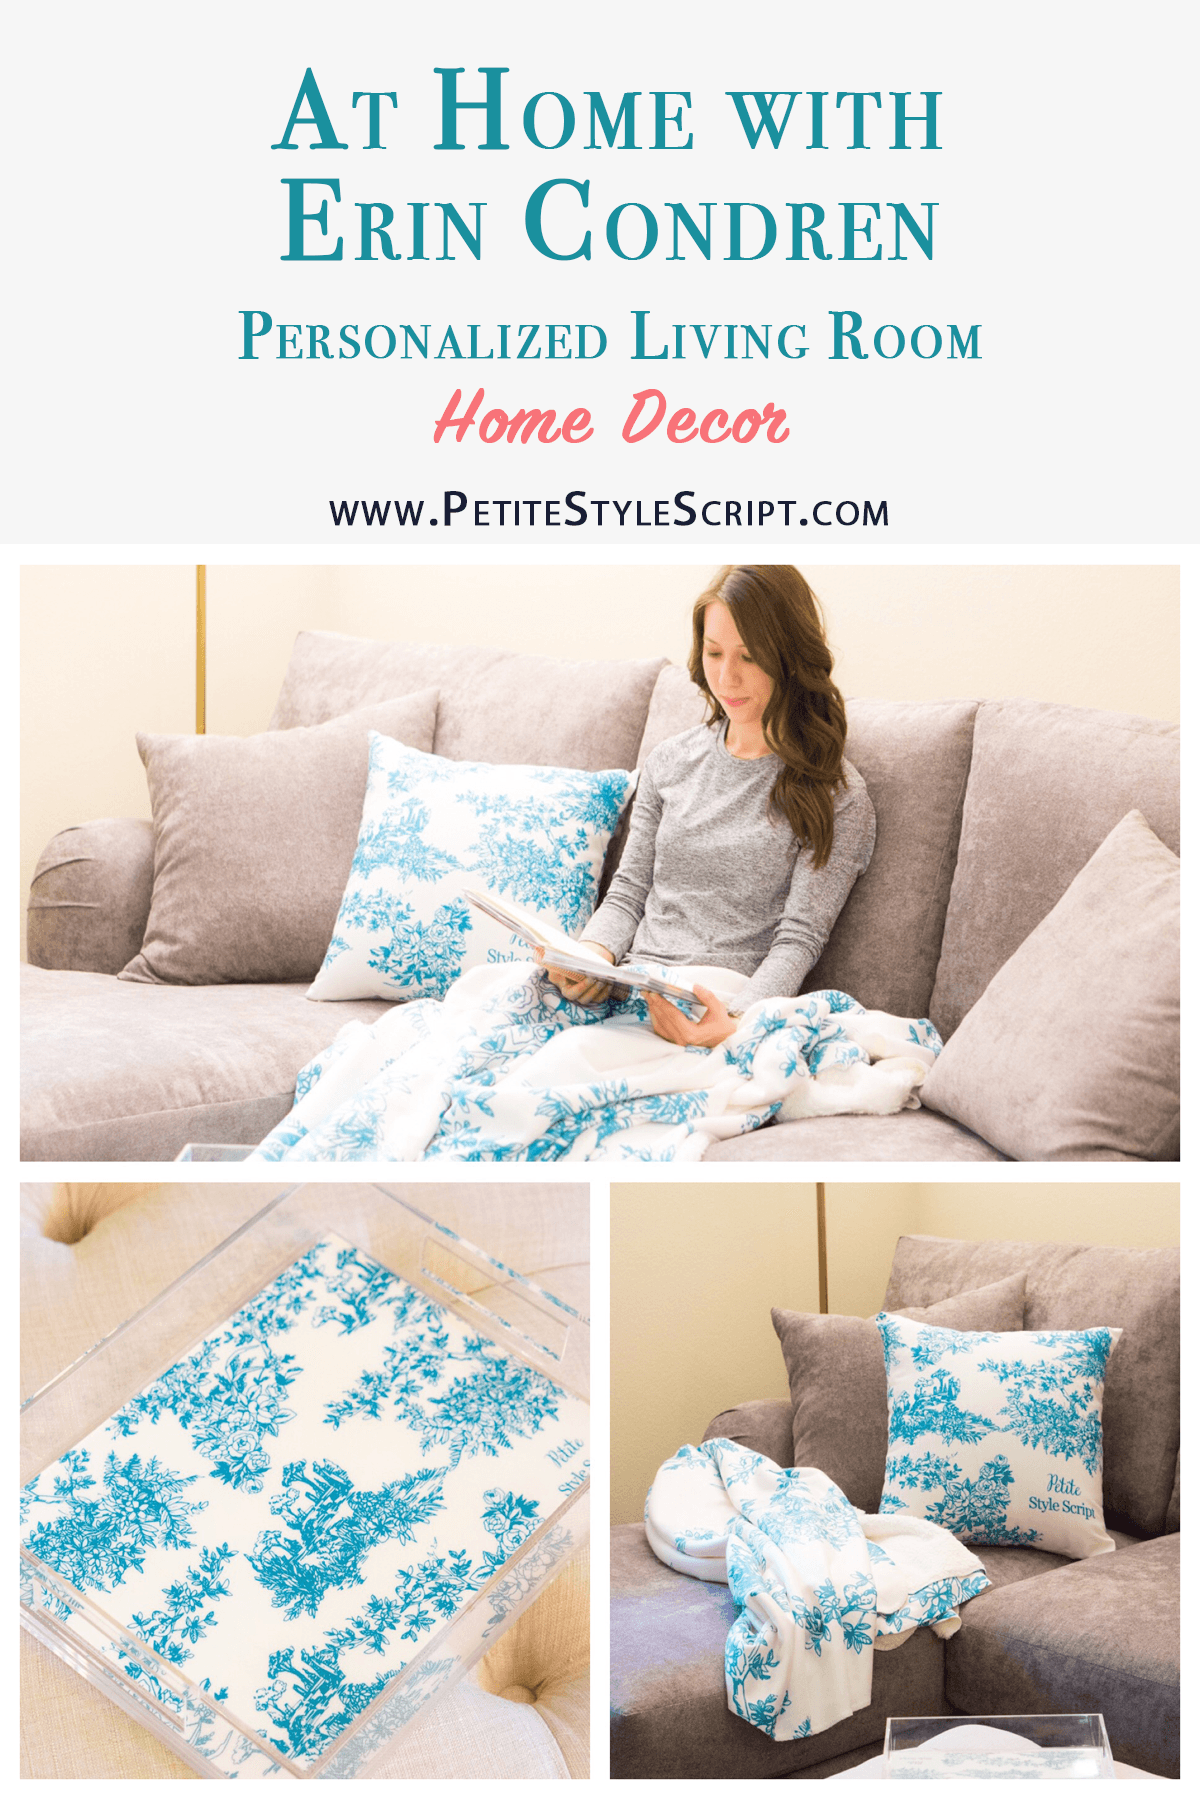 Erin Condren Home Décor Review | Sherpa throw review | Throw accent pillow | Toile y'all design print | Acrylic tray and insert | Teal green and gray living room décor and color scheme | Best throw blanket | Best trays for living room ottoman and bar cart | peacock green